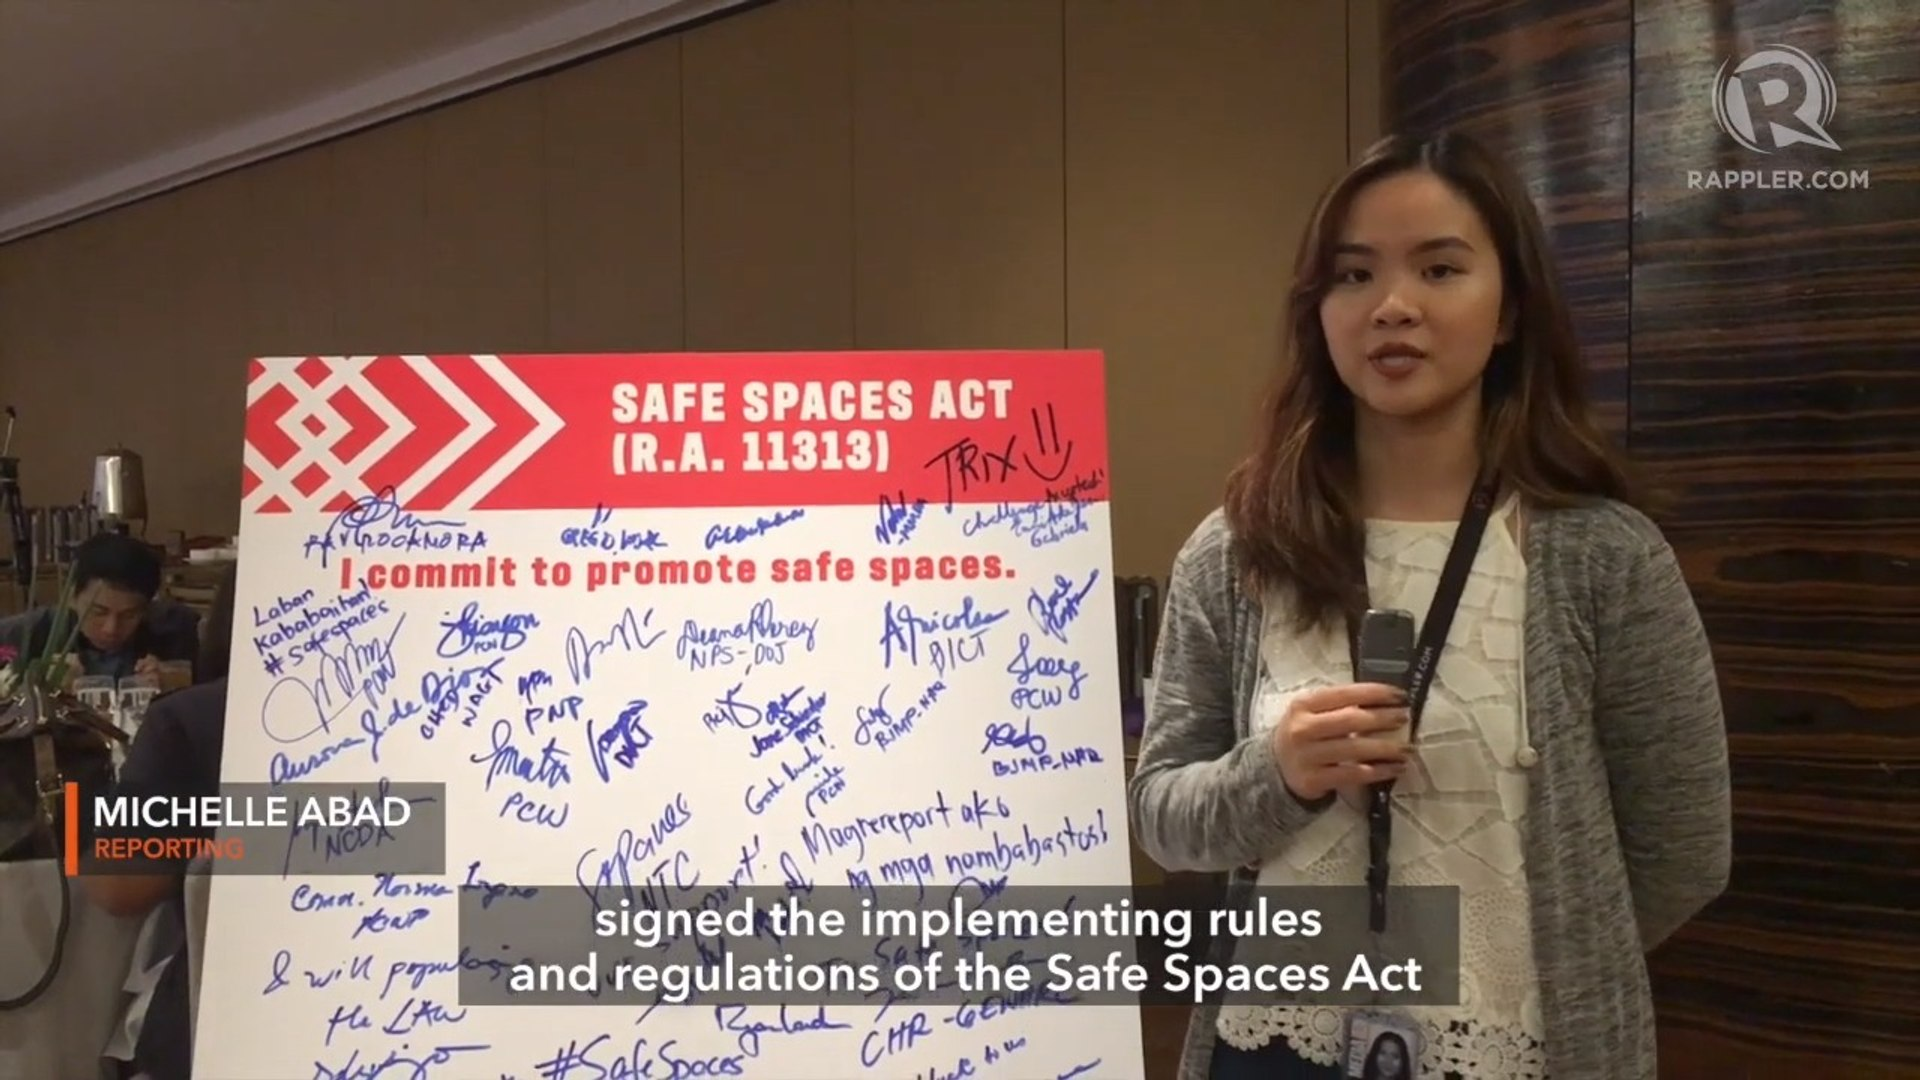 Safe spaces extend to physical, online spaces following 'Bawal Bastos' law